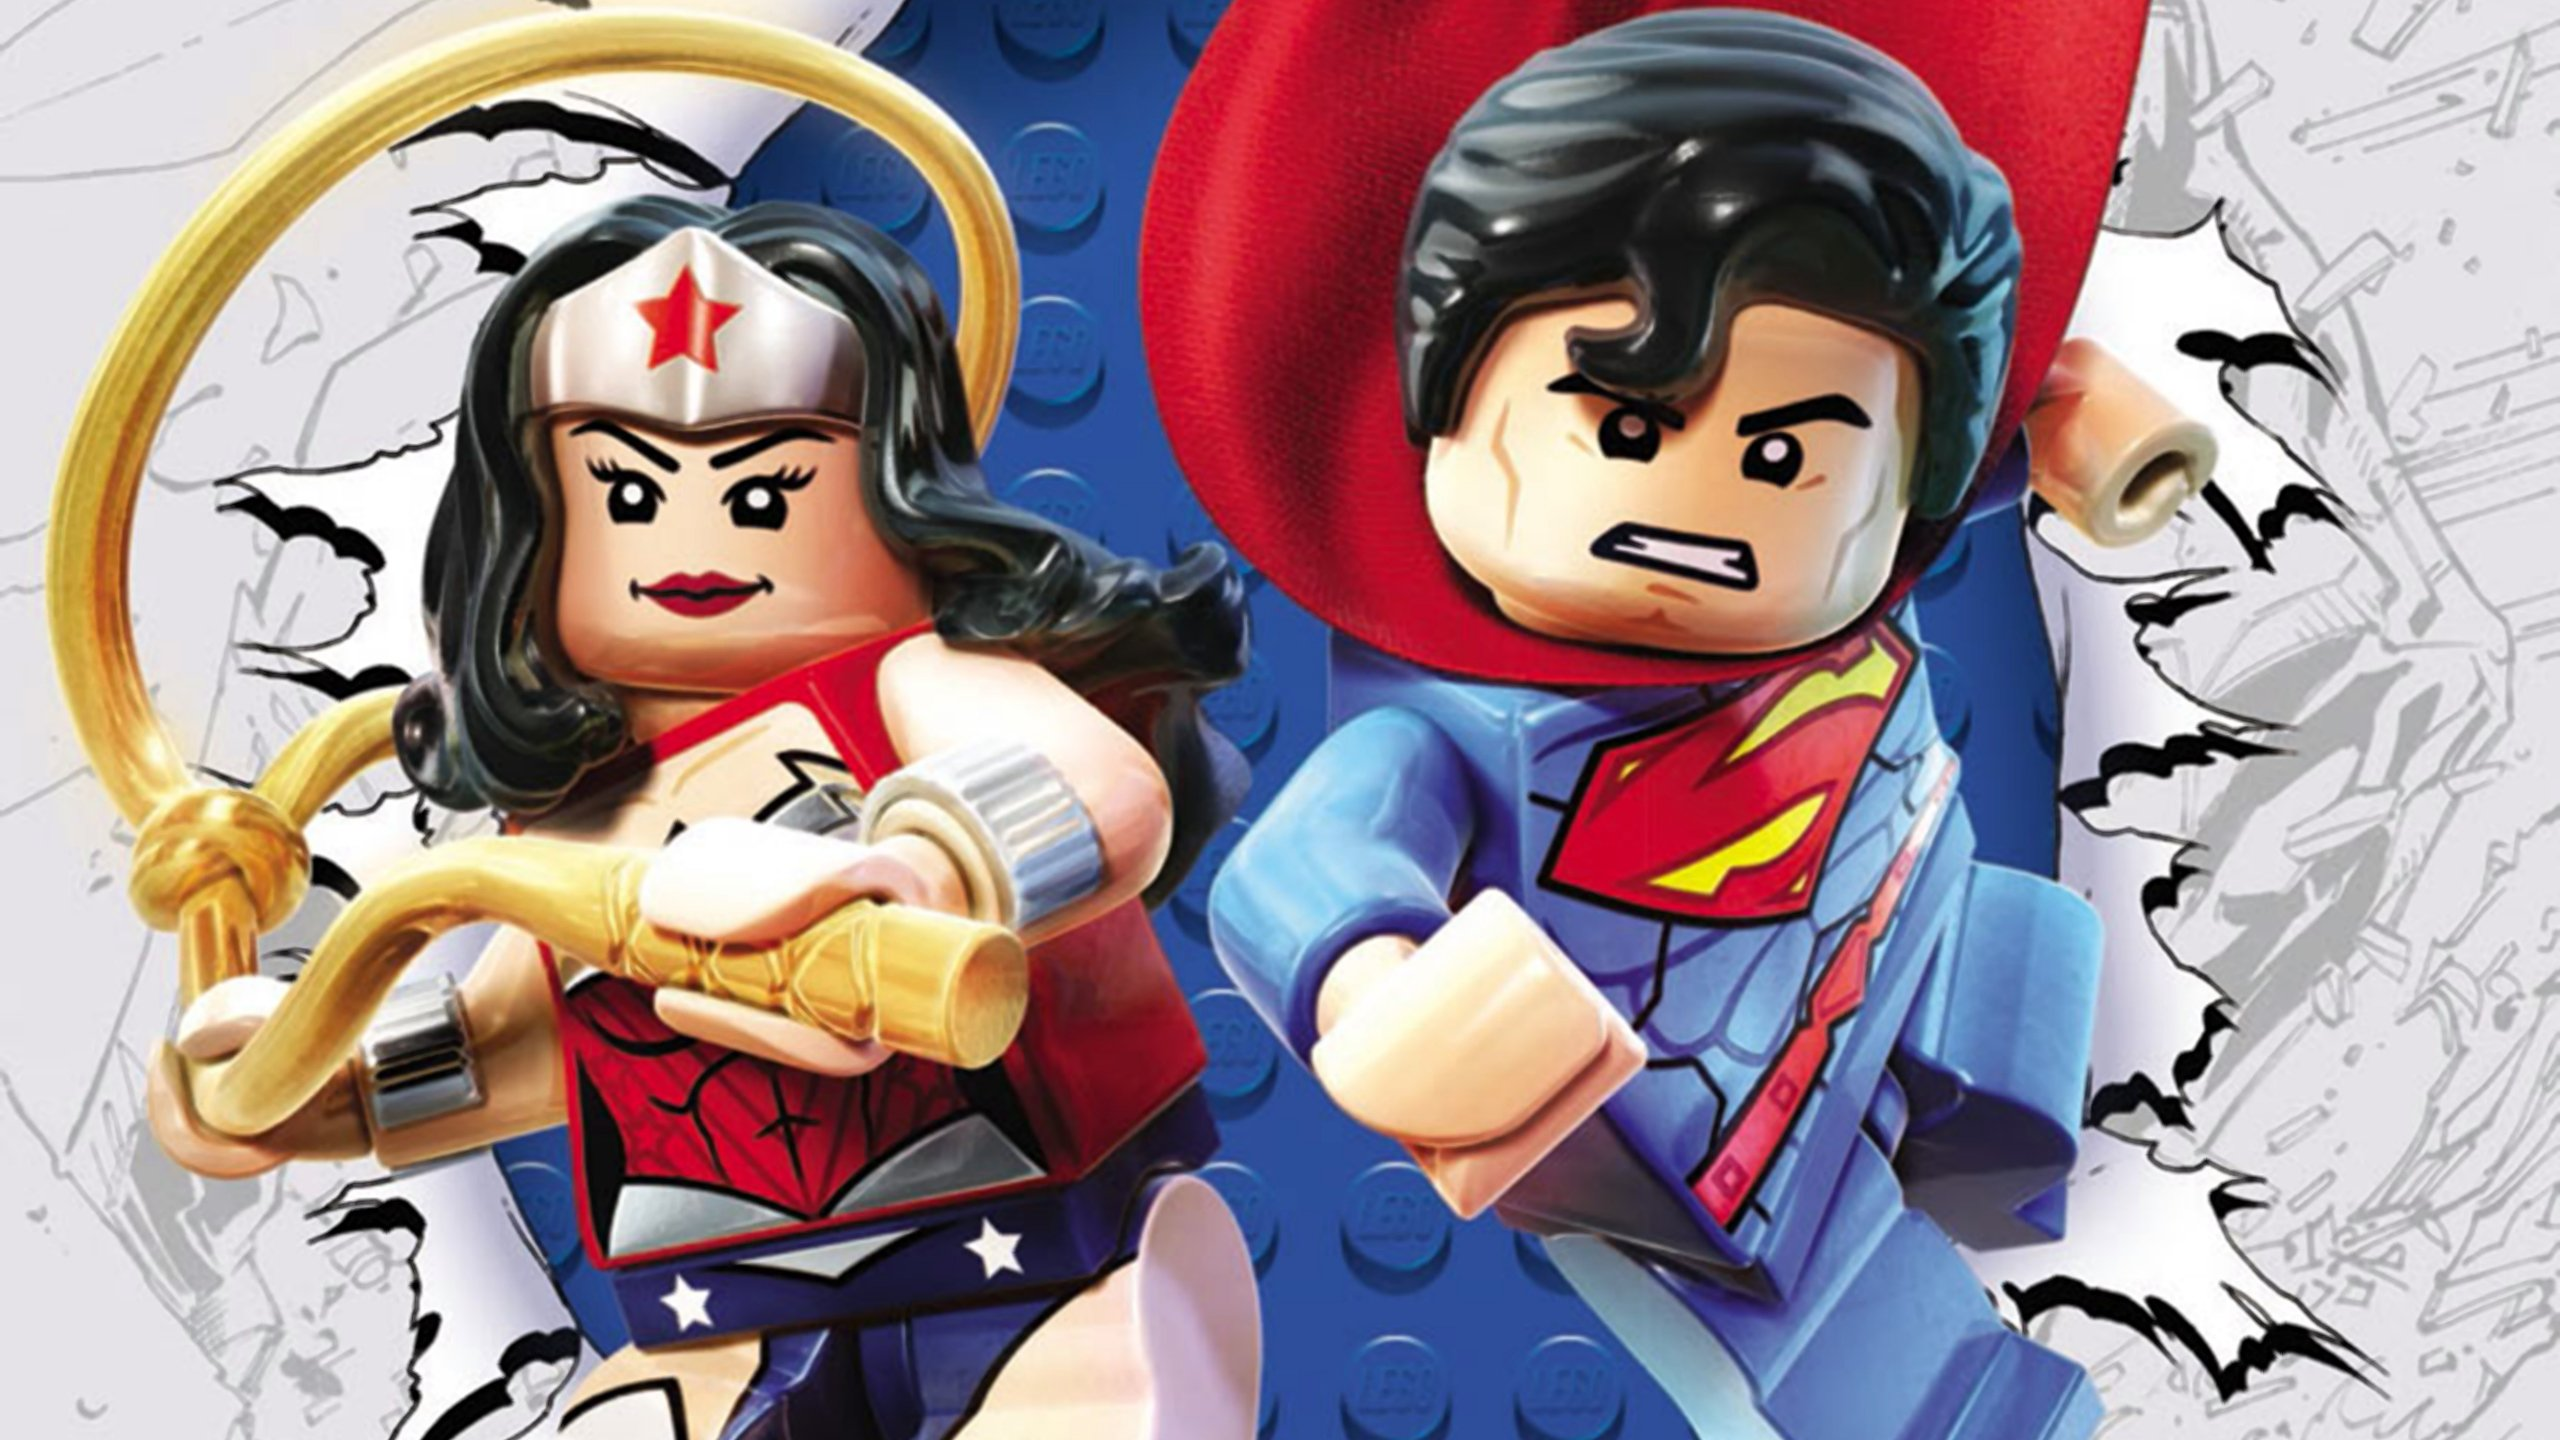 Lego Superman And Wonder Woman Wallpaper 2560x1440 424537